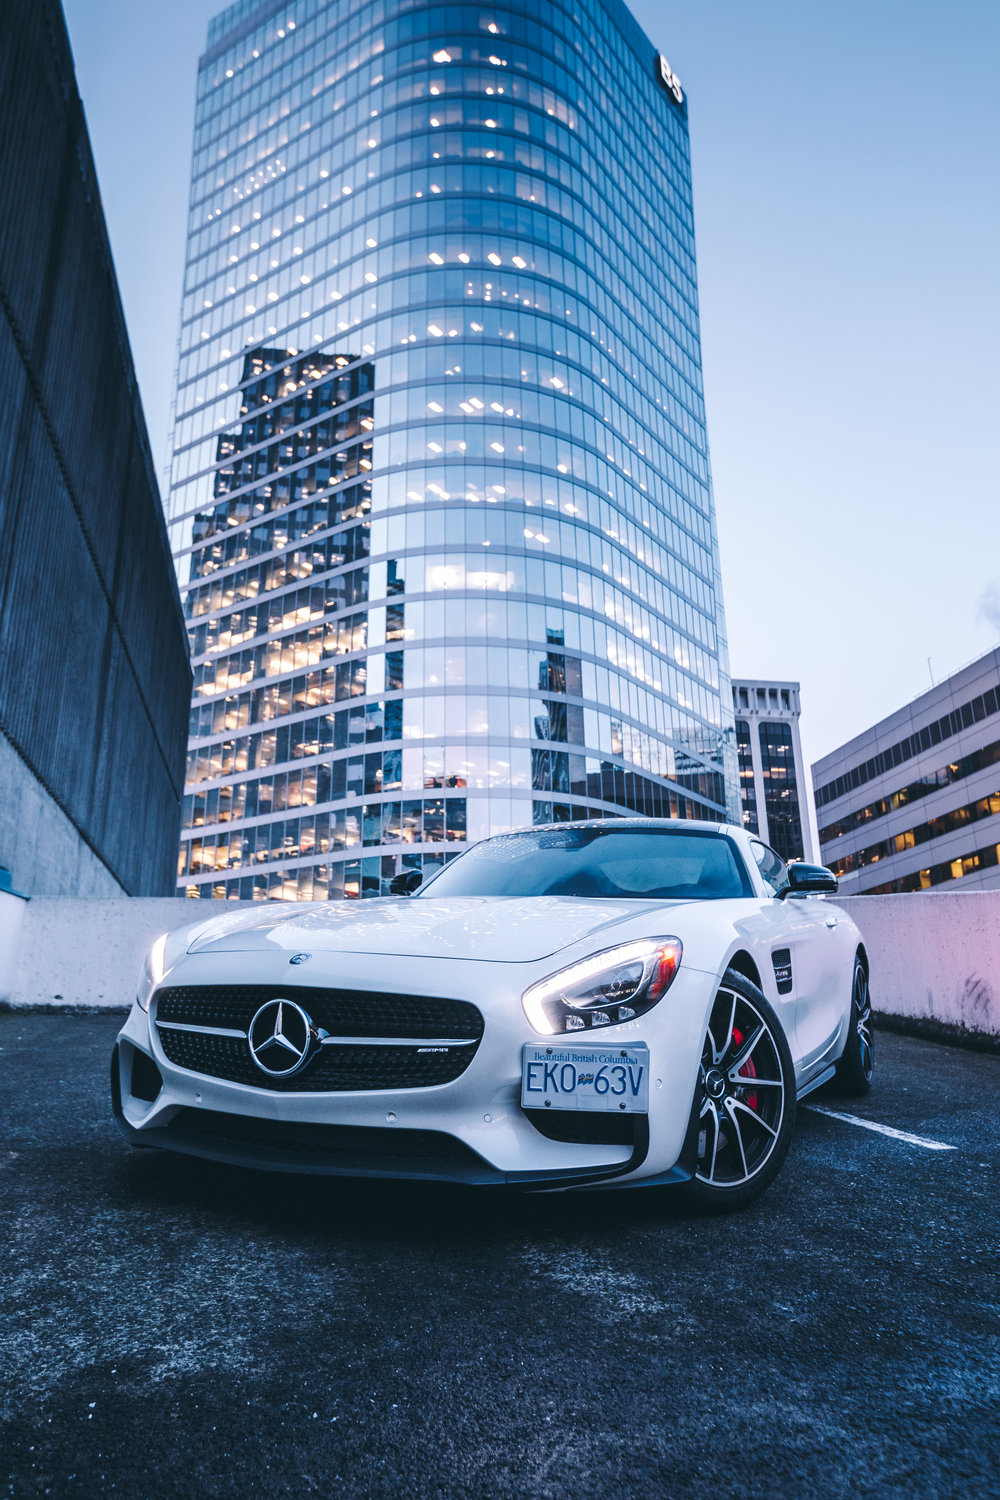 12.14.2017 - SeatoSkyExotics AMG GTS - Edited (4 of 8).jpg